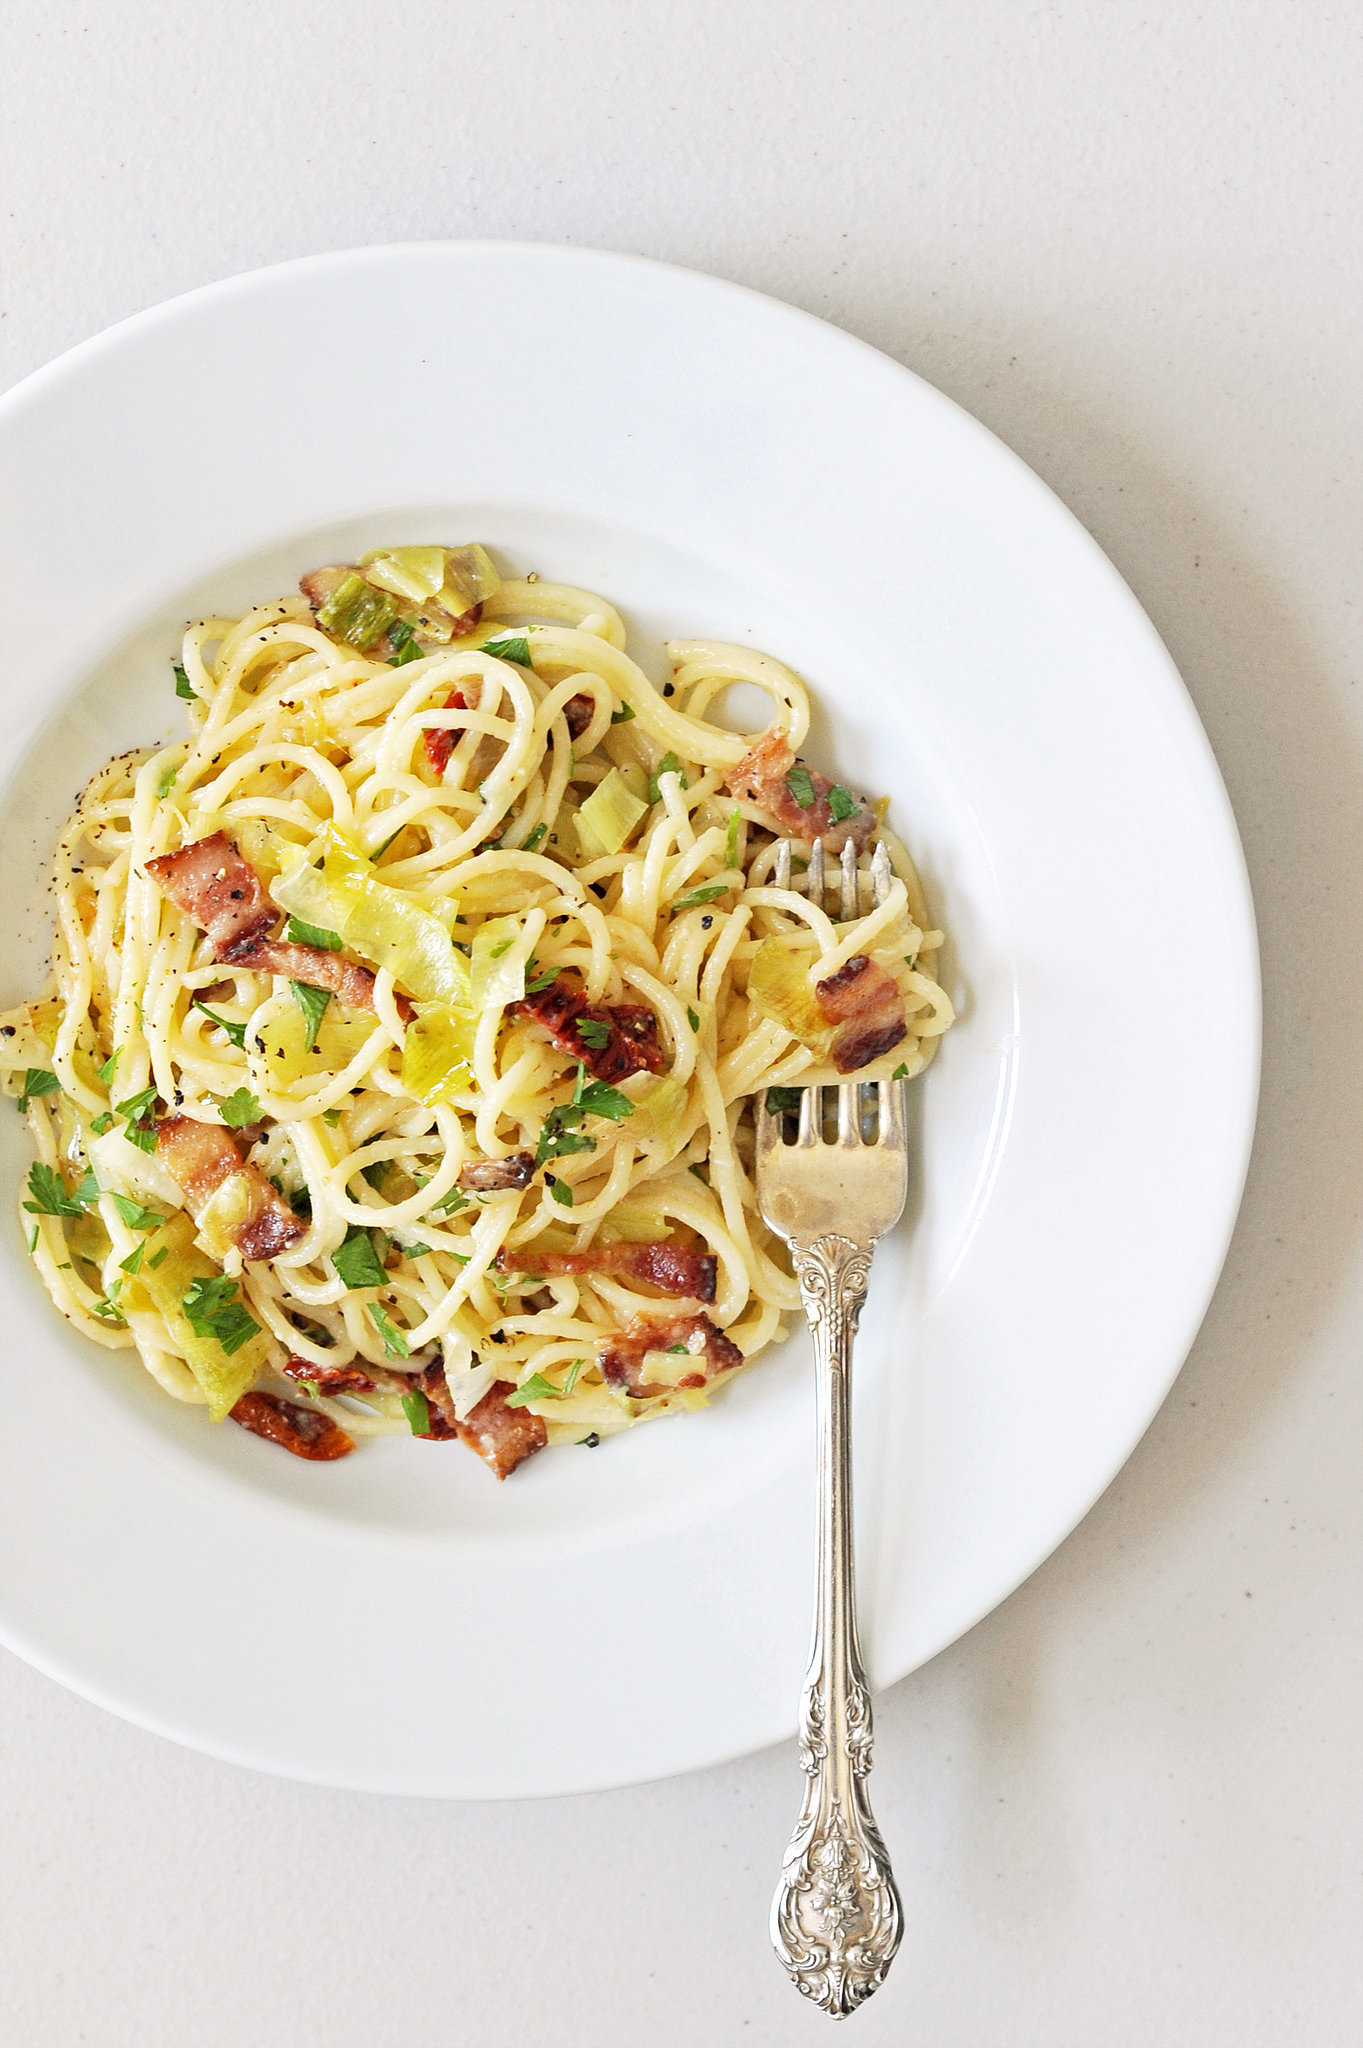 ... and Easy Dinner: Pasta Carbonara With Leeks and Sun-Dried Tomatoes